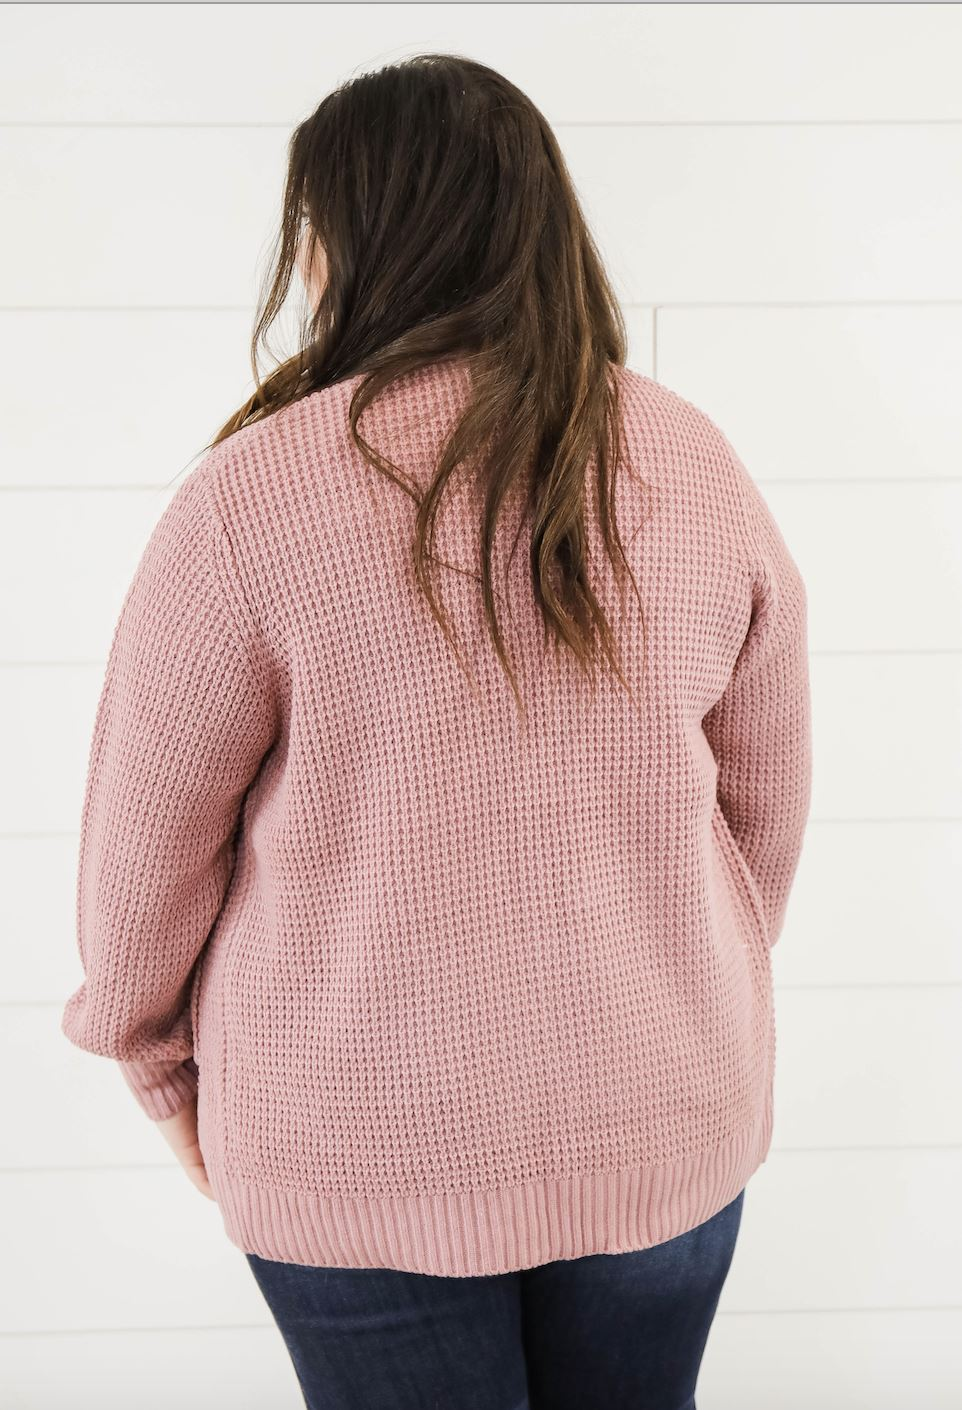 The Chloe Knit Cardigan in Light Rose Cardigan Zenana